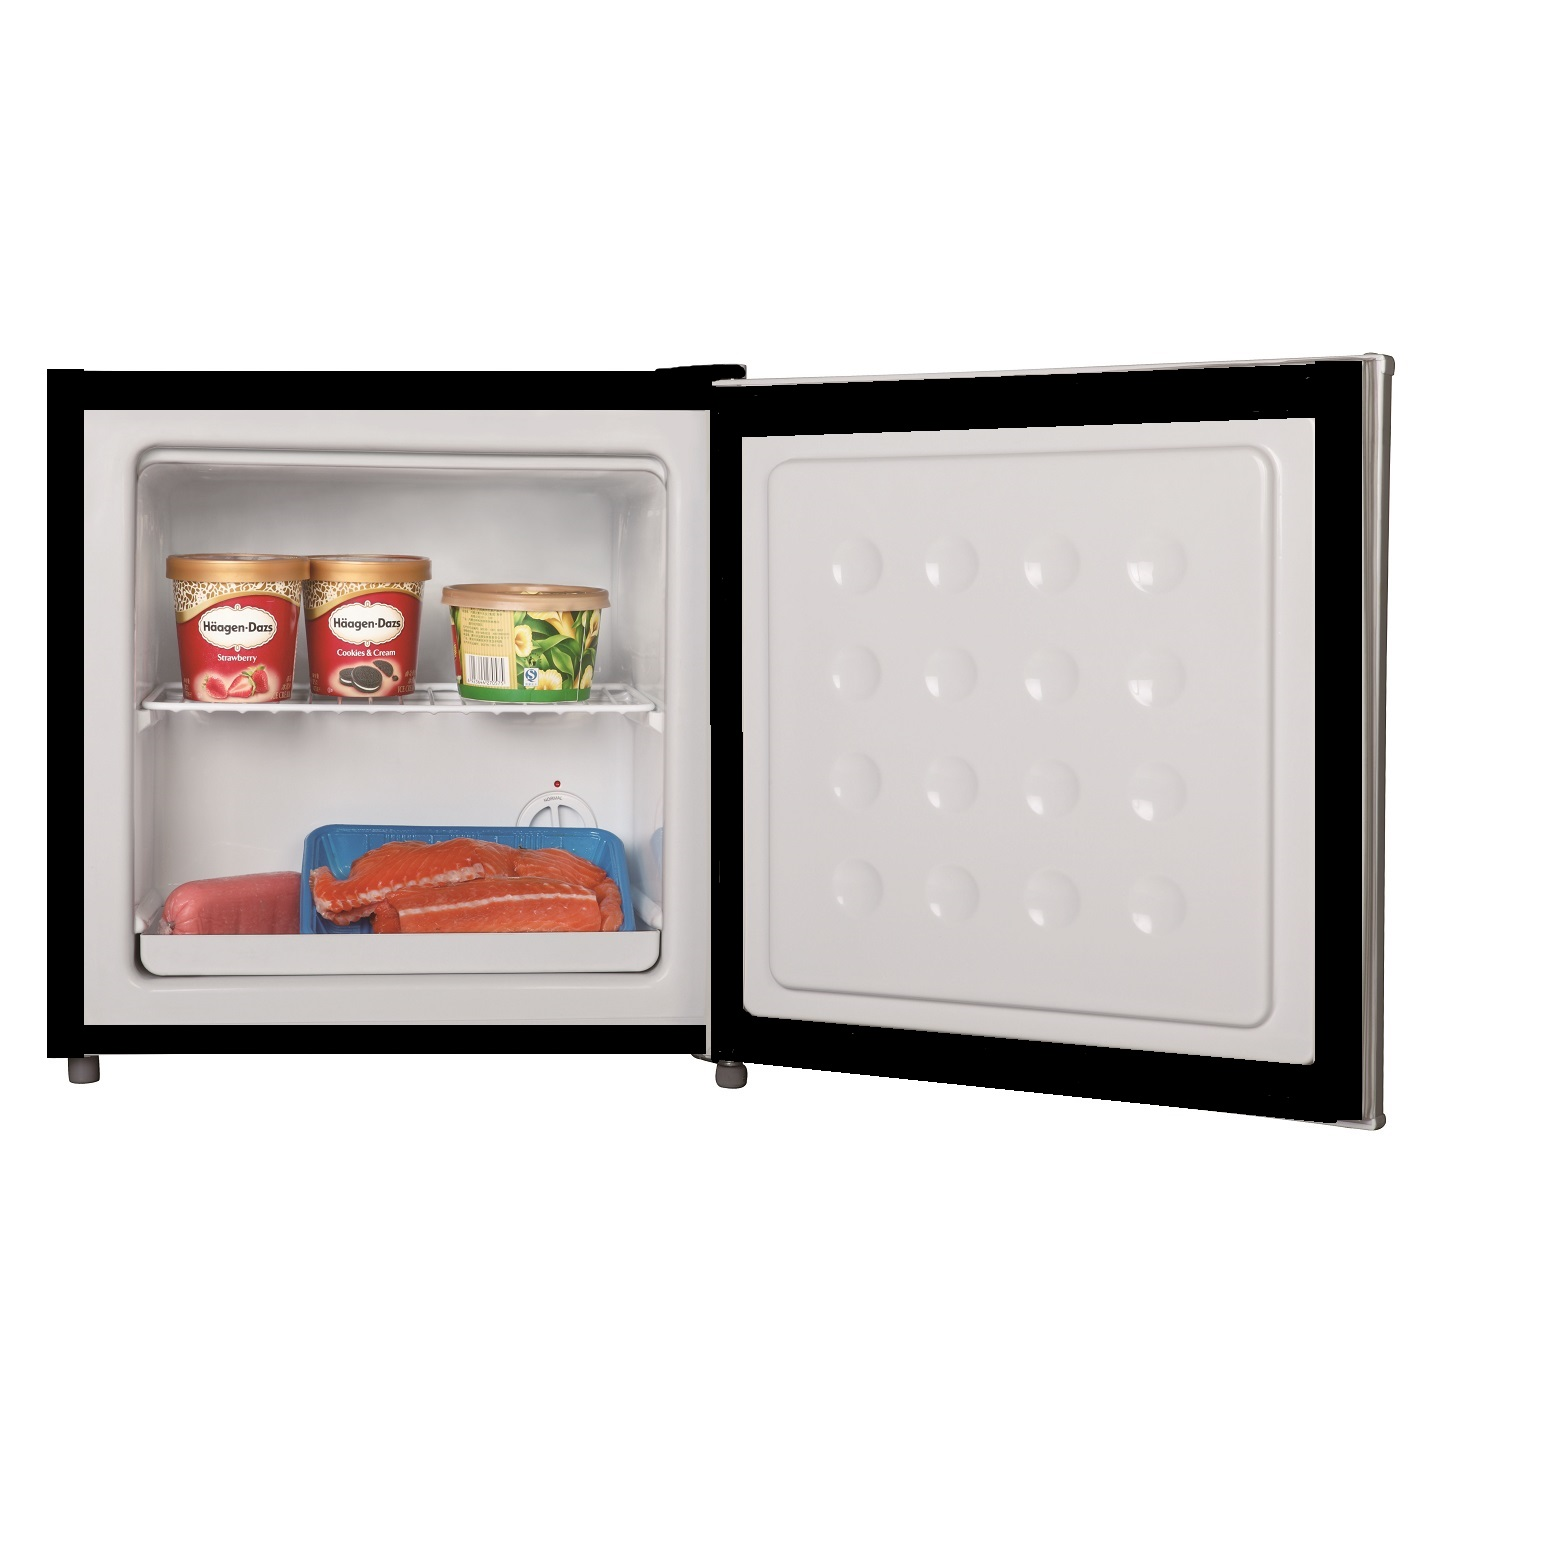 FR 52-11 B - Defrost Upright Freezer Black - Capacity 1.1 cu.ft